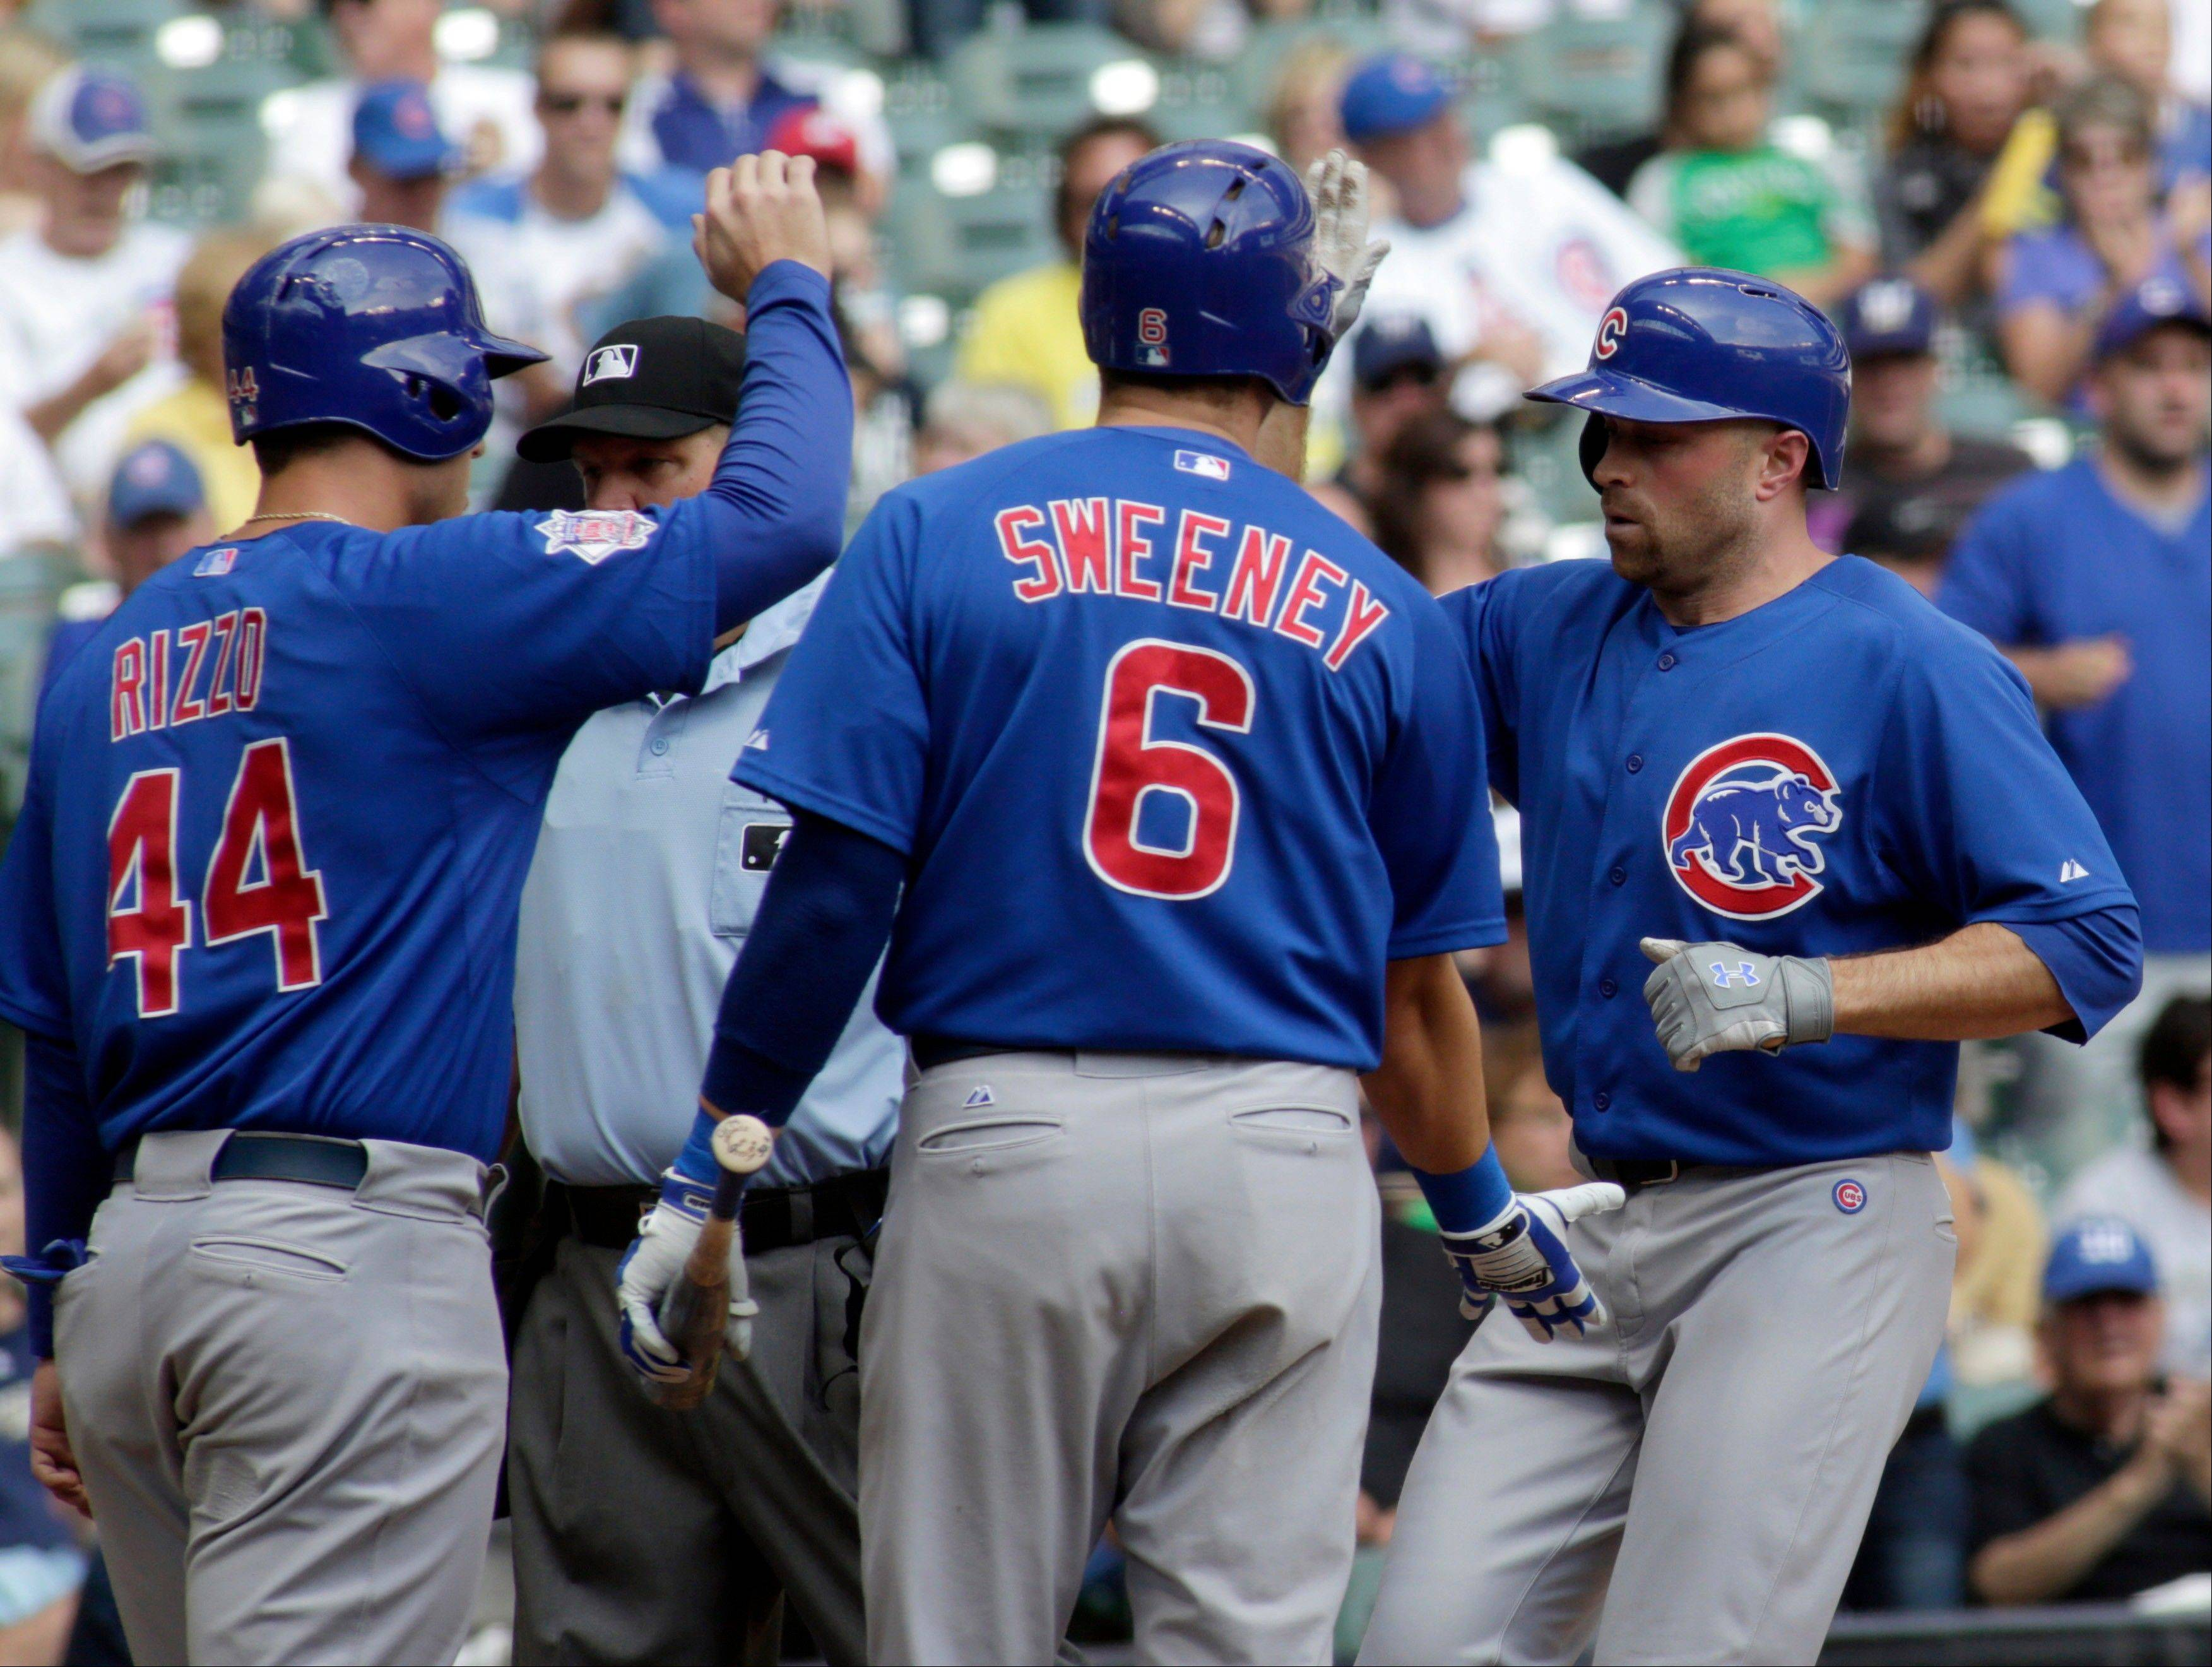 Chicago Cubs' Nate Schierholtz, right, is congratulated by teammates Anthony Rizzo, left, and Ryan Sweeney, center, after hitting a two-run home run against the Milwaukee Brewers during the third inning of a baseball game Thursday, Sept. 19, 2013, in Milwaukee. (AP Photo/Darren Hauck)